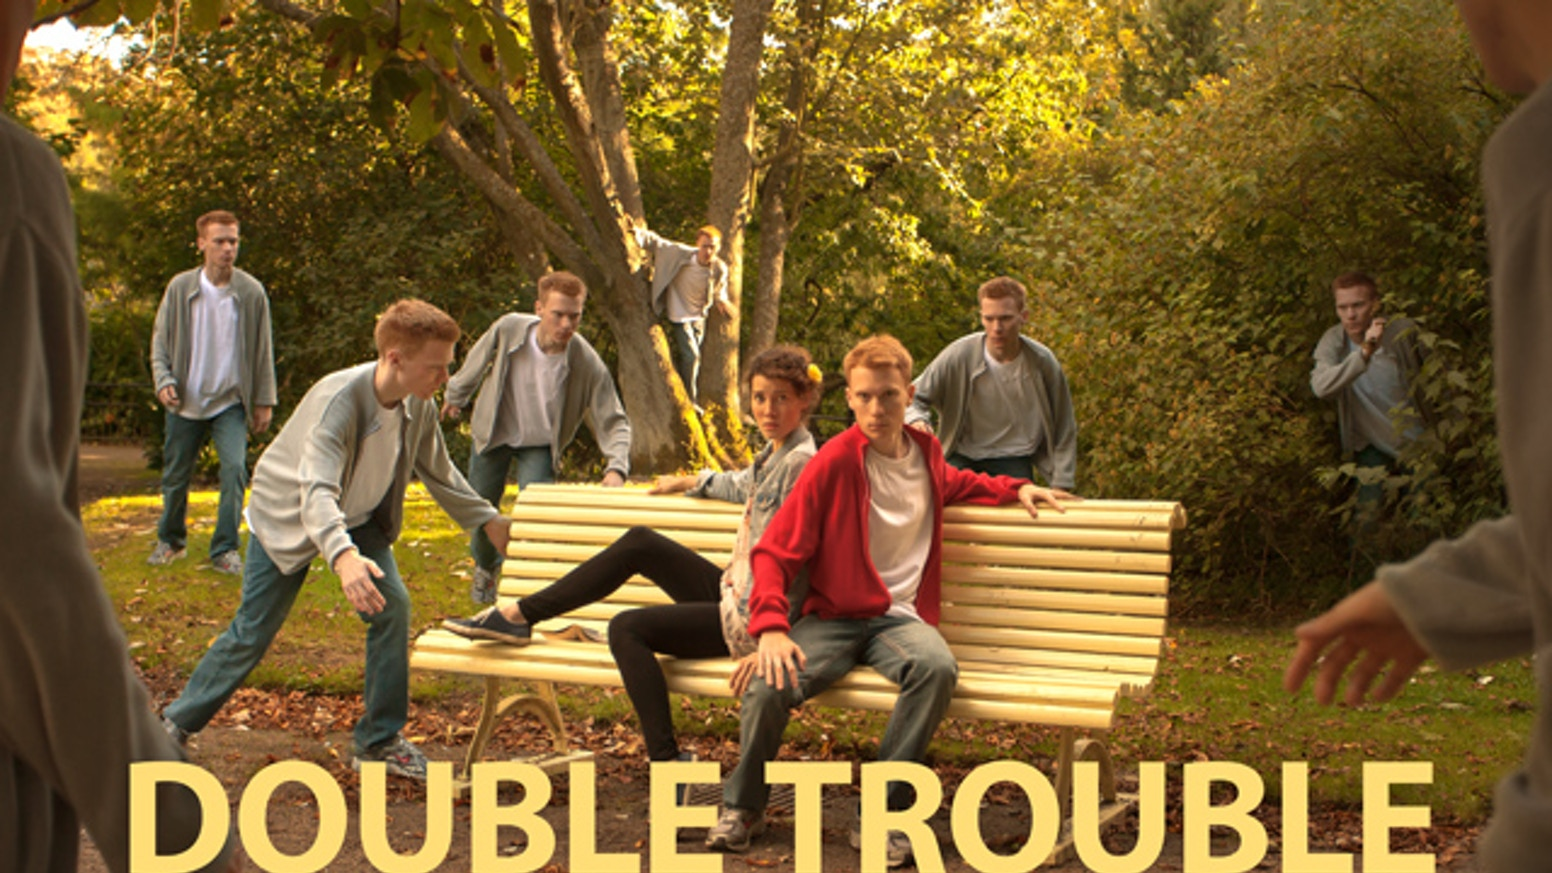 Double The Trouble Quotes: A Time Travel Comedy By Tobias Roediger